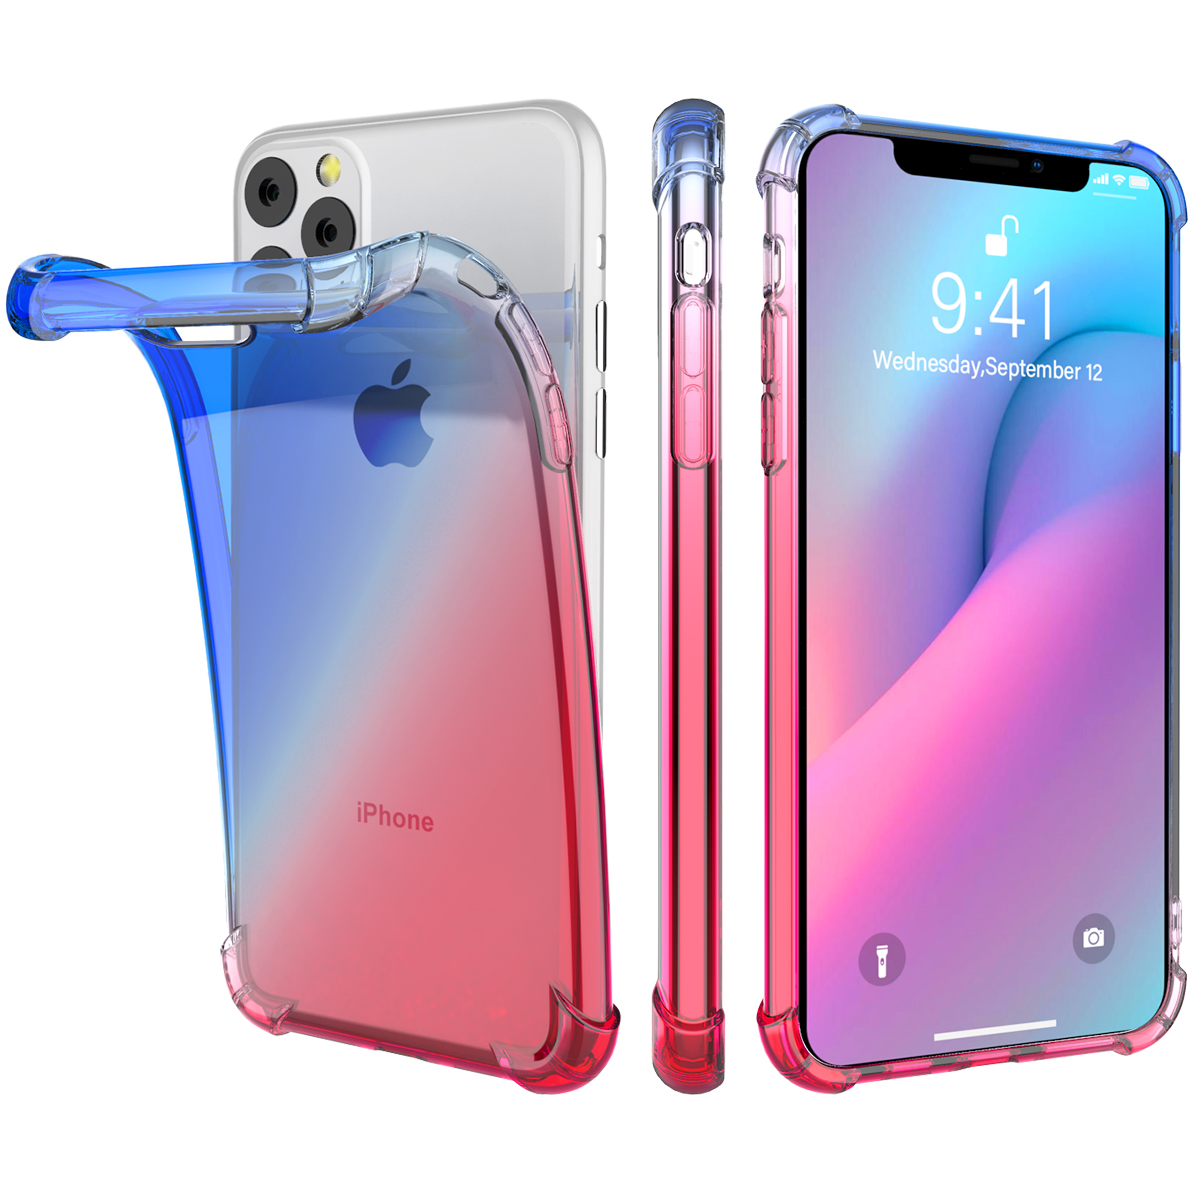 Gradient Soft TPU Case for iPhone 11/11 Pro/11 Pro Max 48